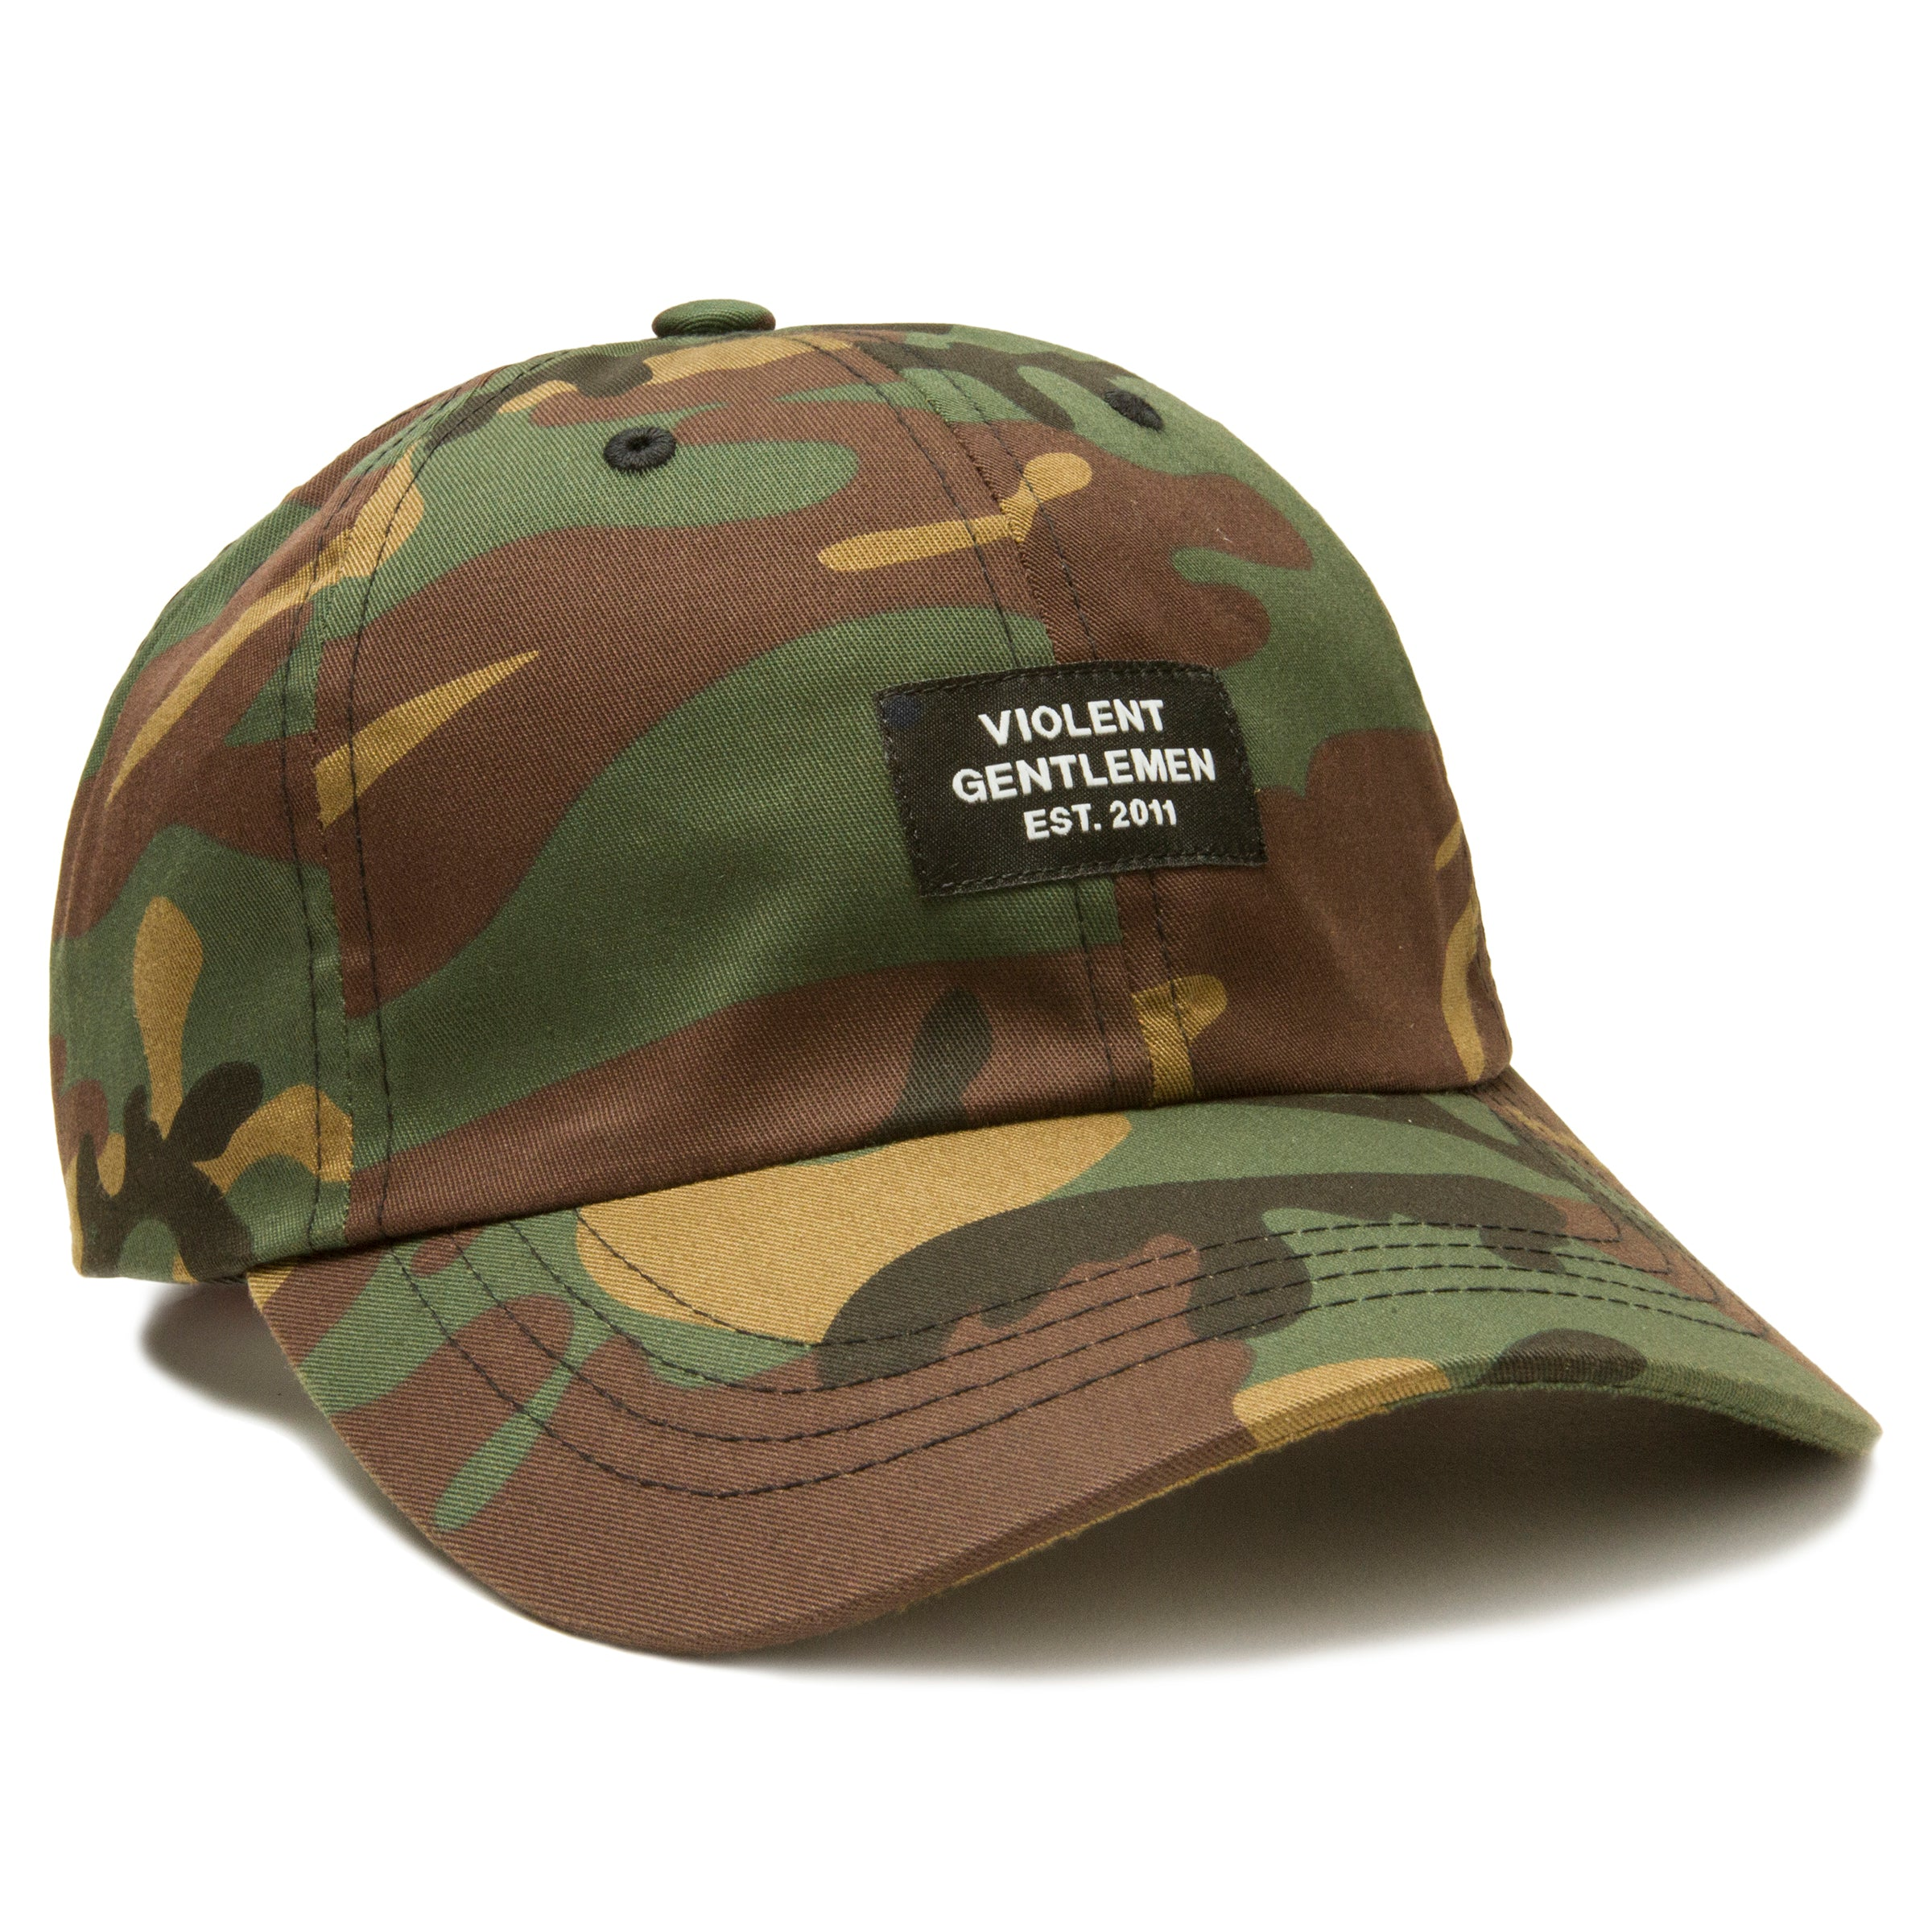 a63c5020488 Lemieux Dad Hat - Camo - Hats - Violent Gentlemen